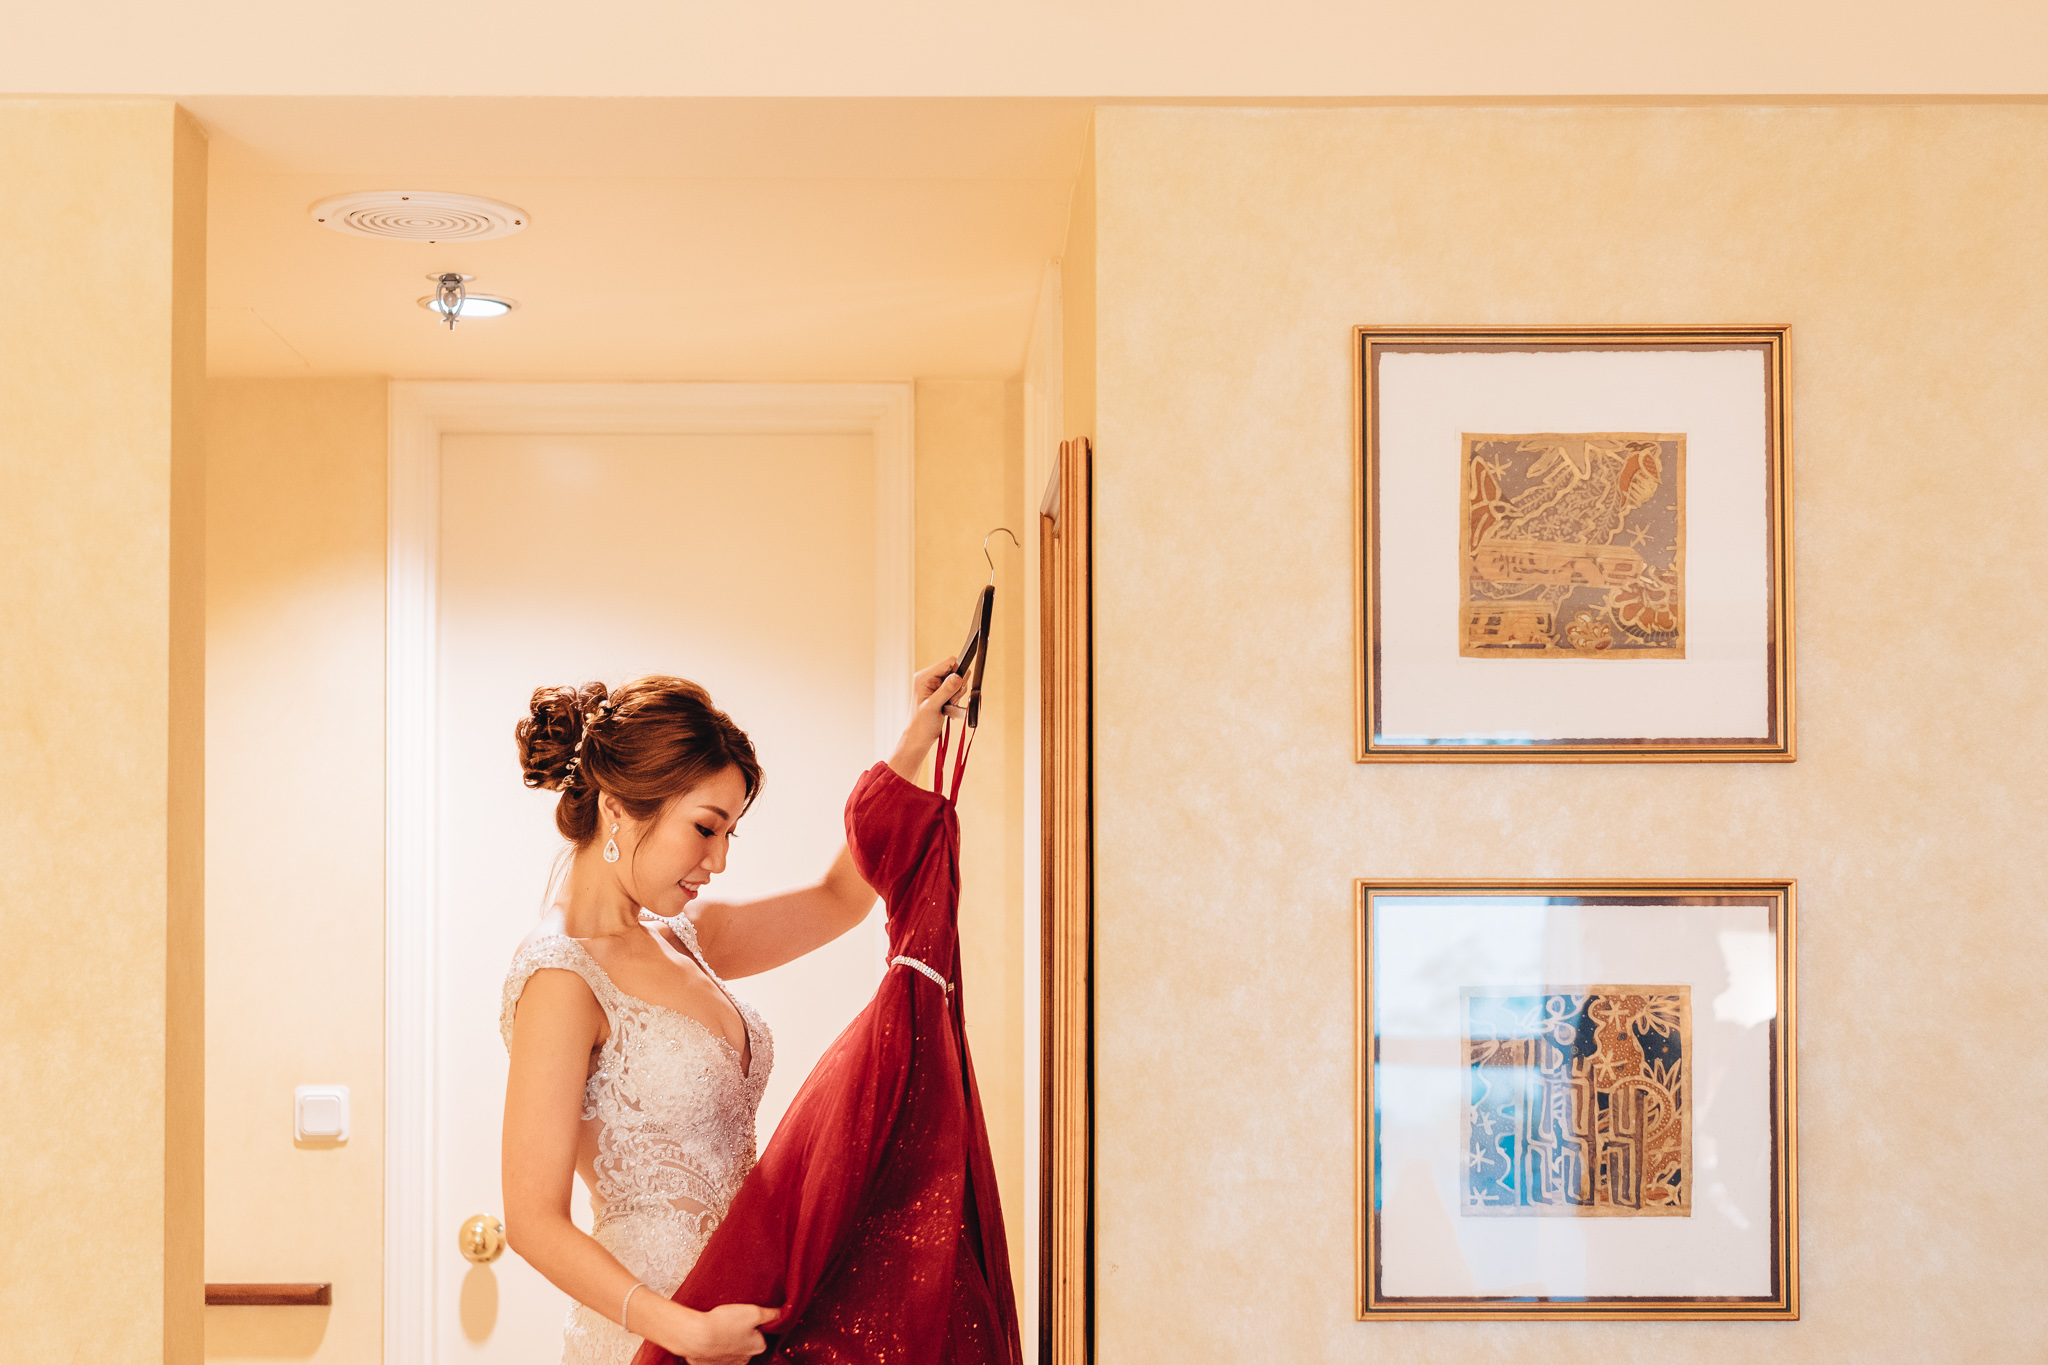 Cindy & Kevin Wedding Day Highlights (resized for sharing) - 169.jpg